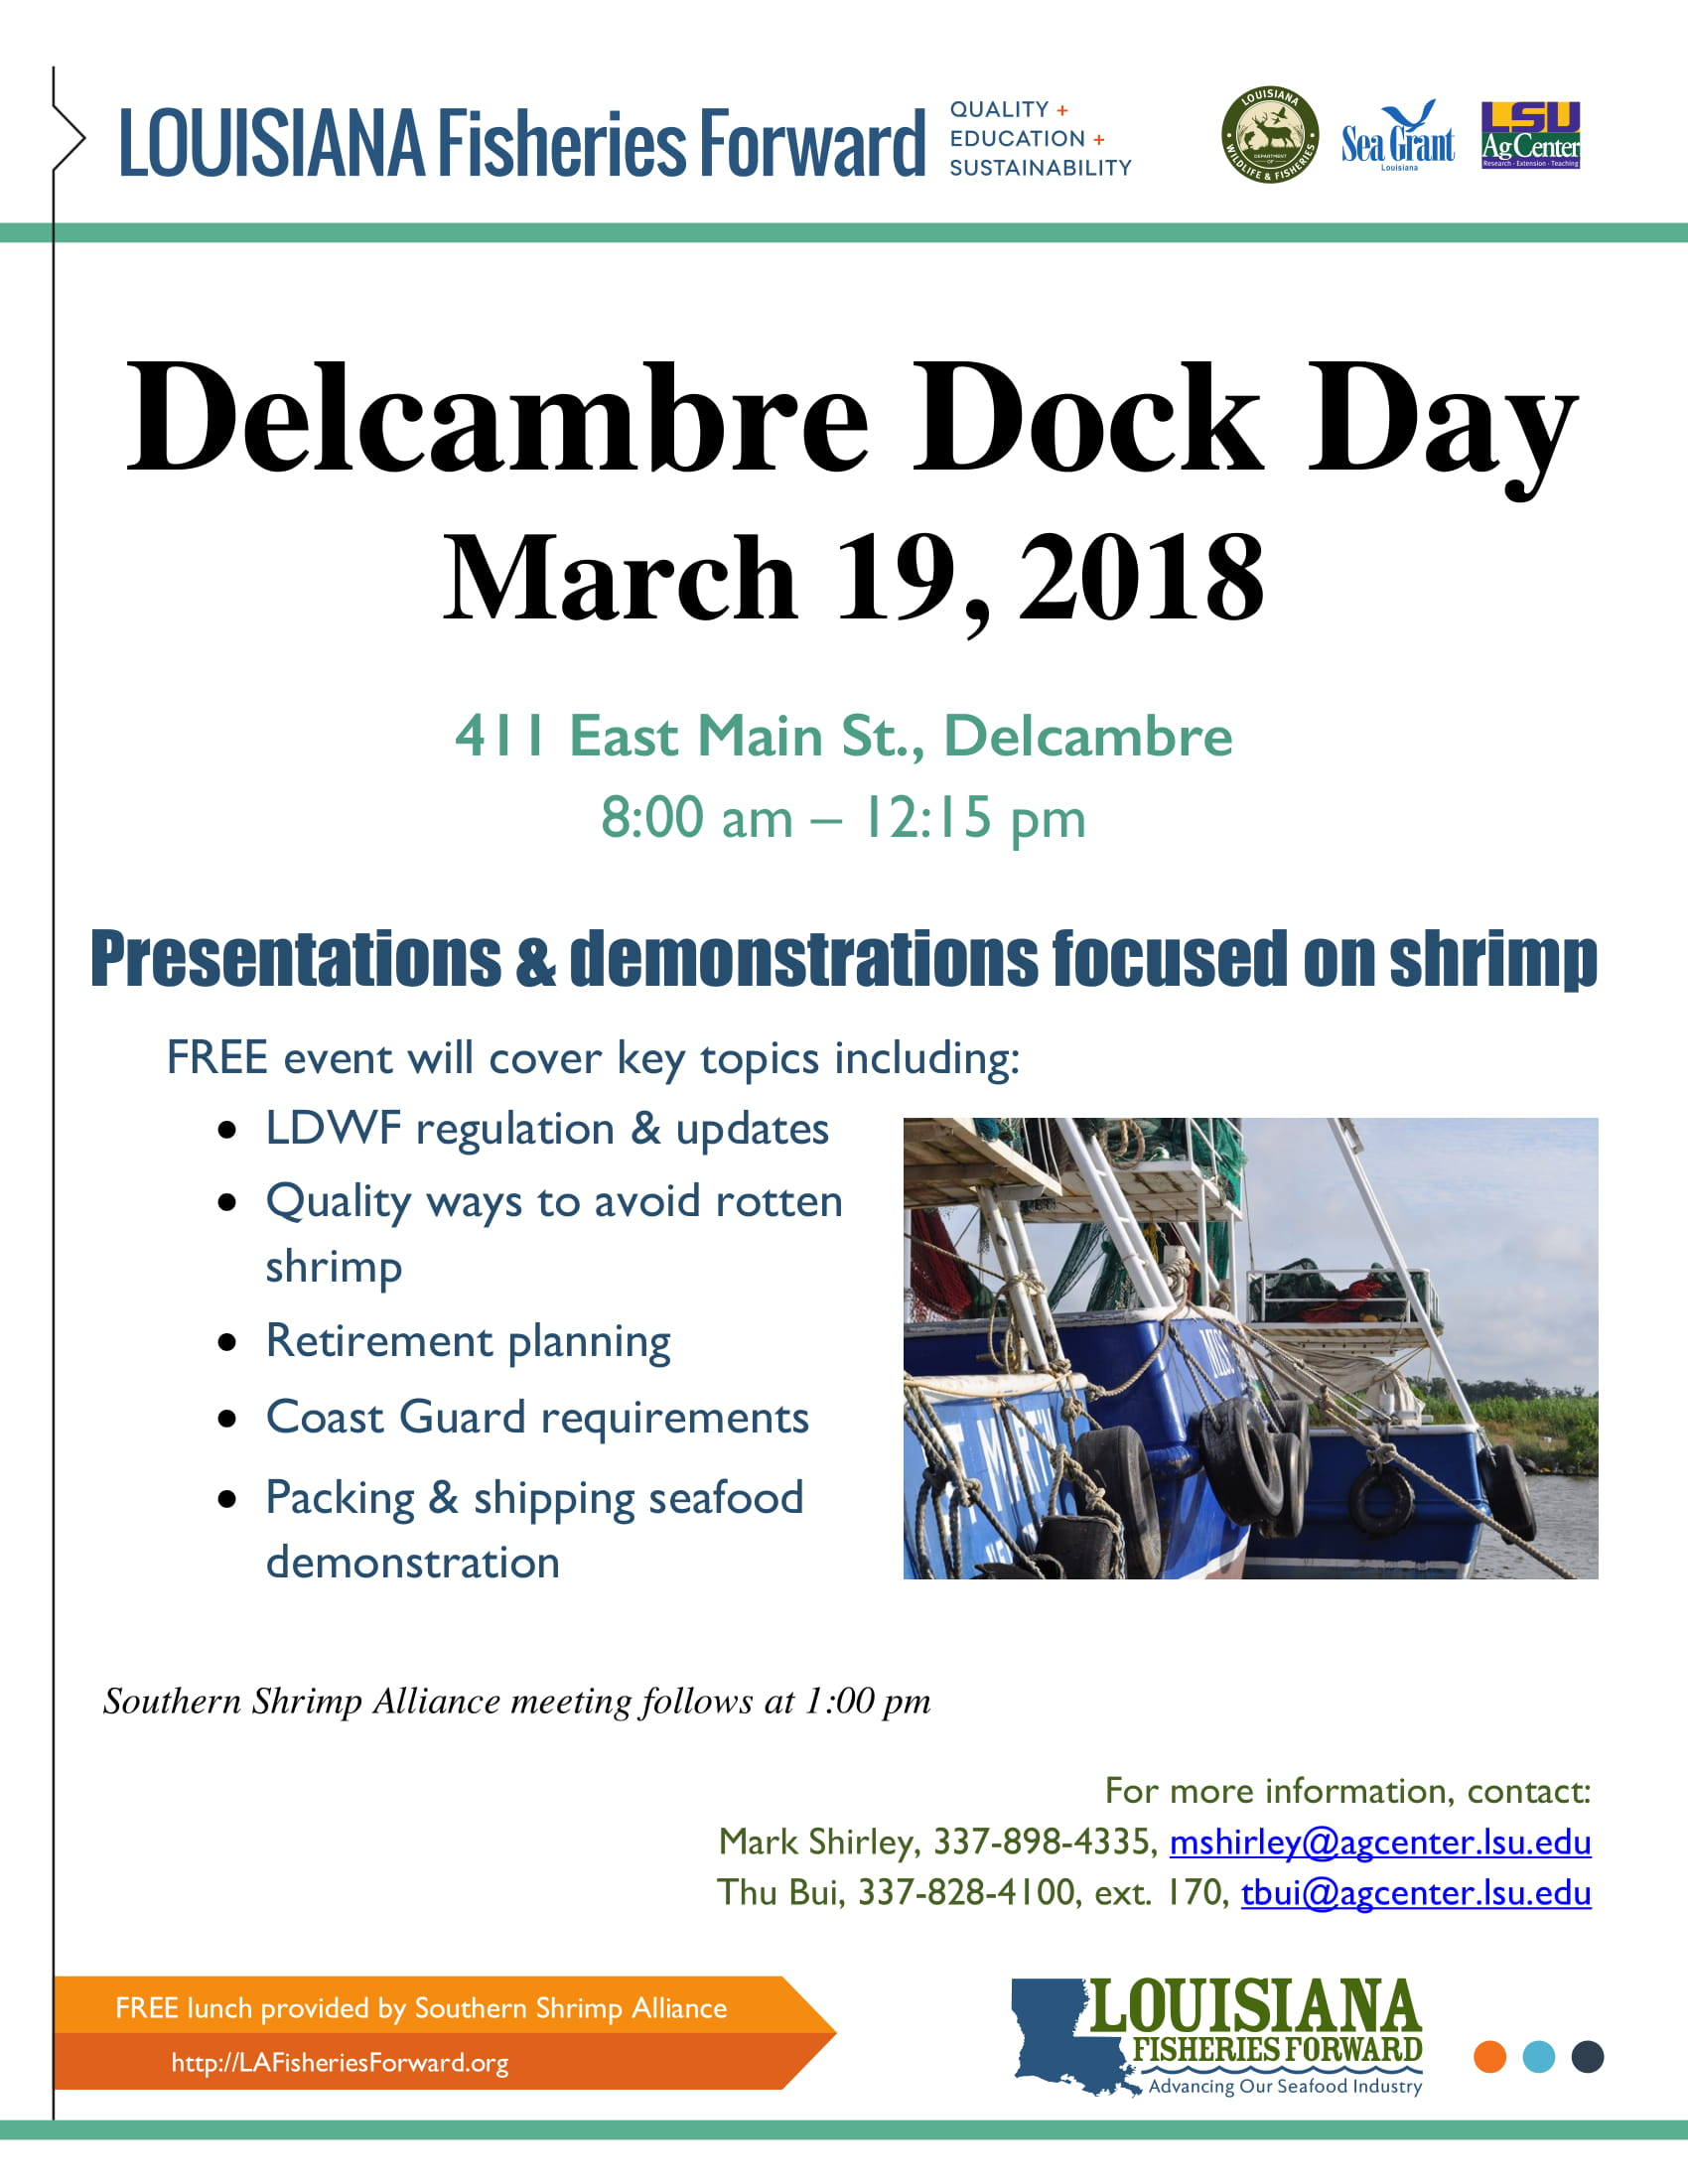 Delcambre Dock Day March 19, 2018 411 East Main St., Delcambre 8:00 am – 12:15 pm Presentations & demonstrations focused on shrimp FREE event will cover key topics including: • LDWF regulation & updates • Quality ways to avoid rotten shrimp • Retirement planning • Coast Guard requirements • Packing & shipping seafood demonstration Southern Shrimp Alliance meeting follows at 1:00 pm For more information, contact: Mark Shirley, 337-898-4335, mshirley@agcenter.lsu.edu Thu Bui, 337-828-4100, ext. 170, tbui@agcenter.lsu.edu FREE lunch provided by Southern Shrimp Alliance http://LAFisheriesForward.org